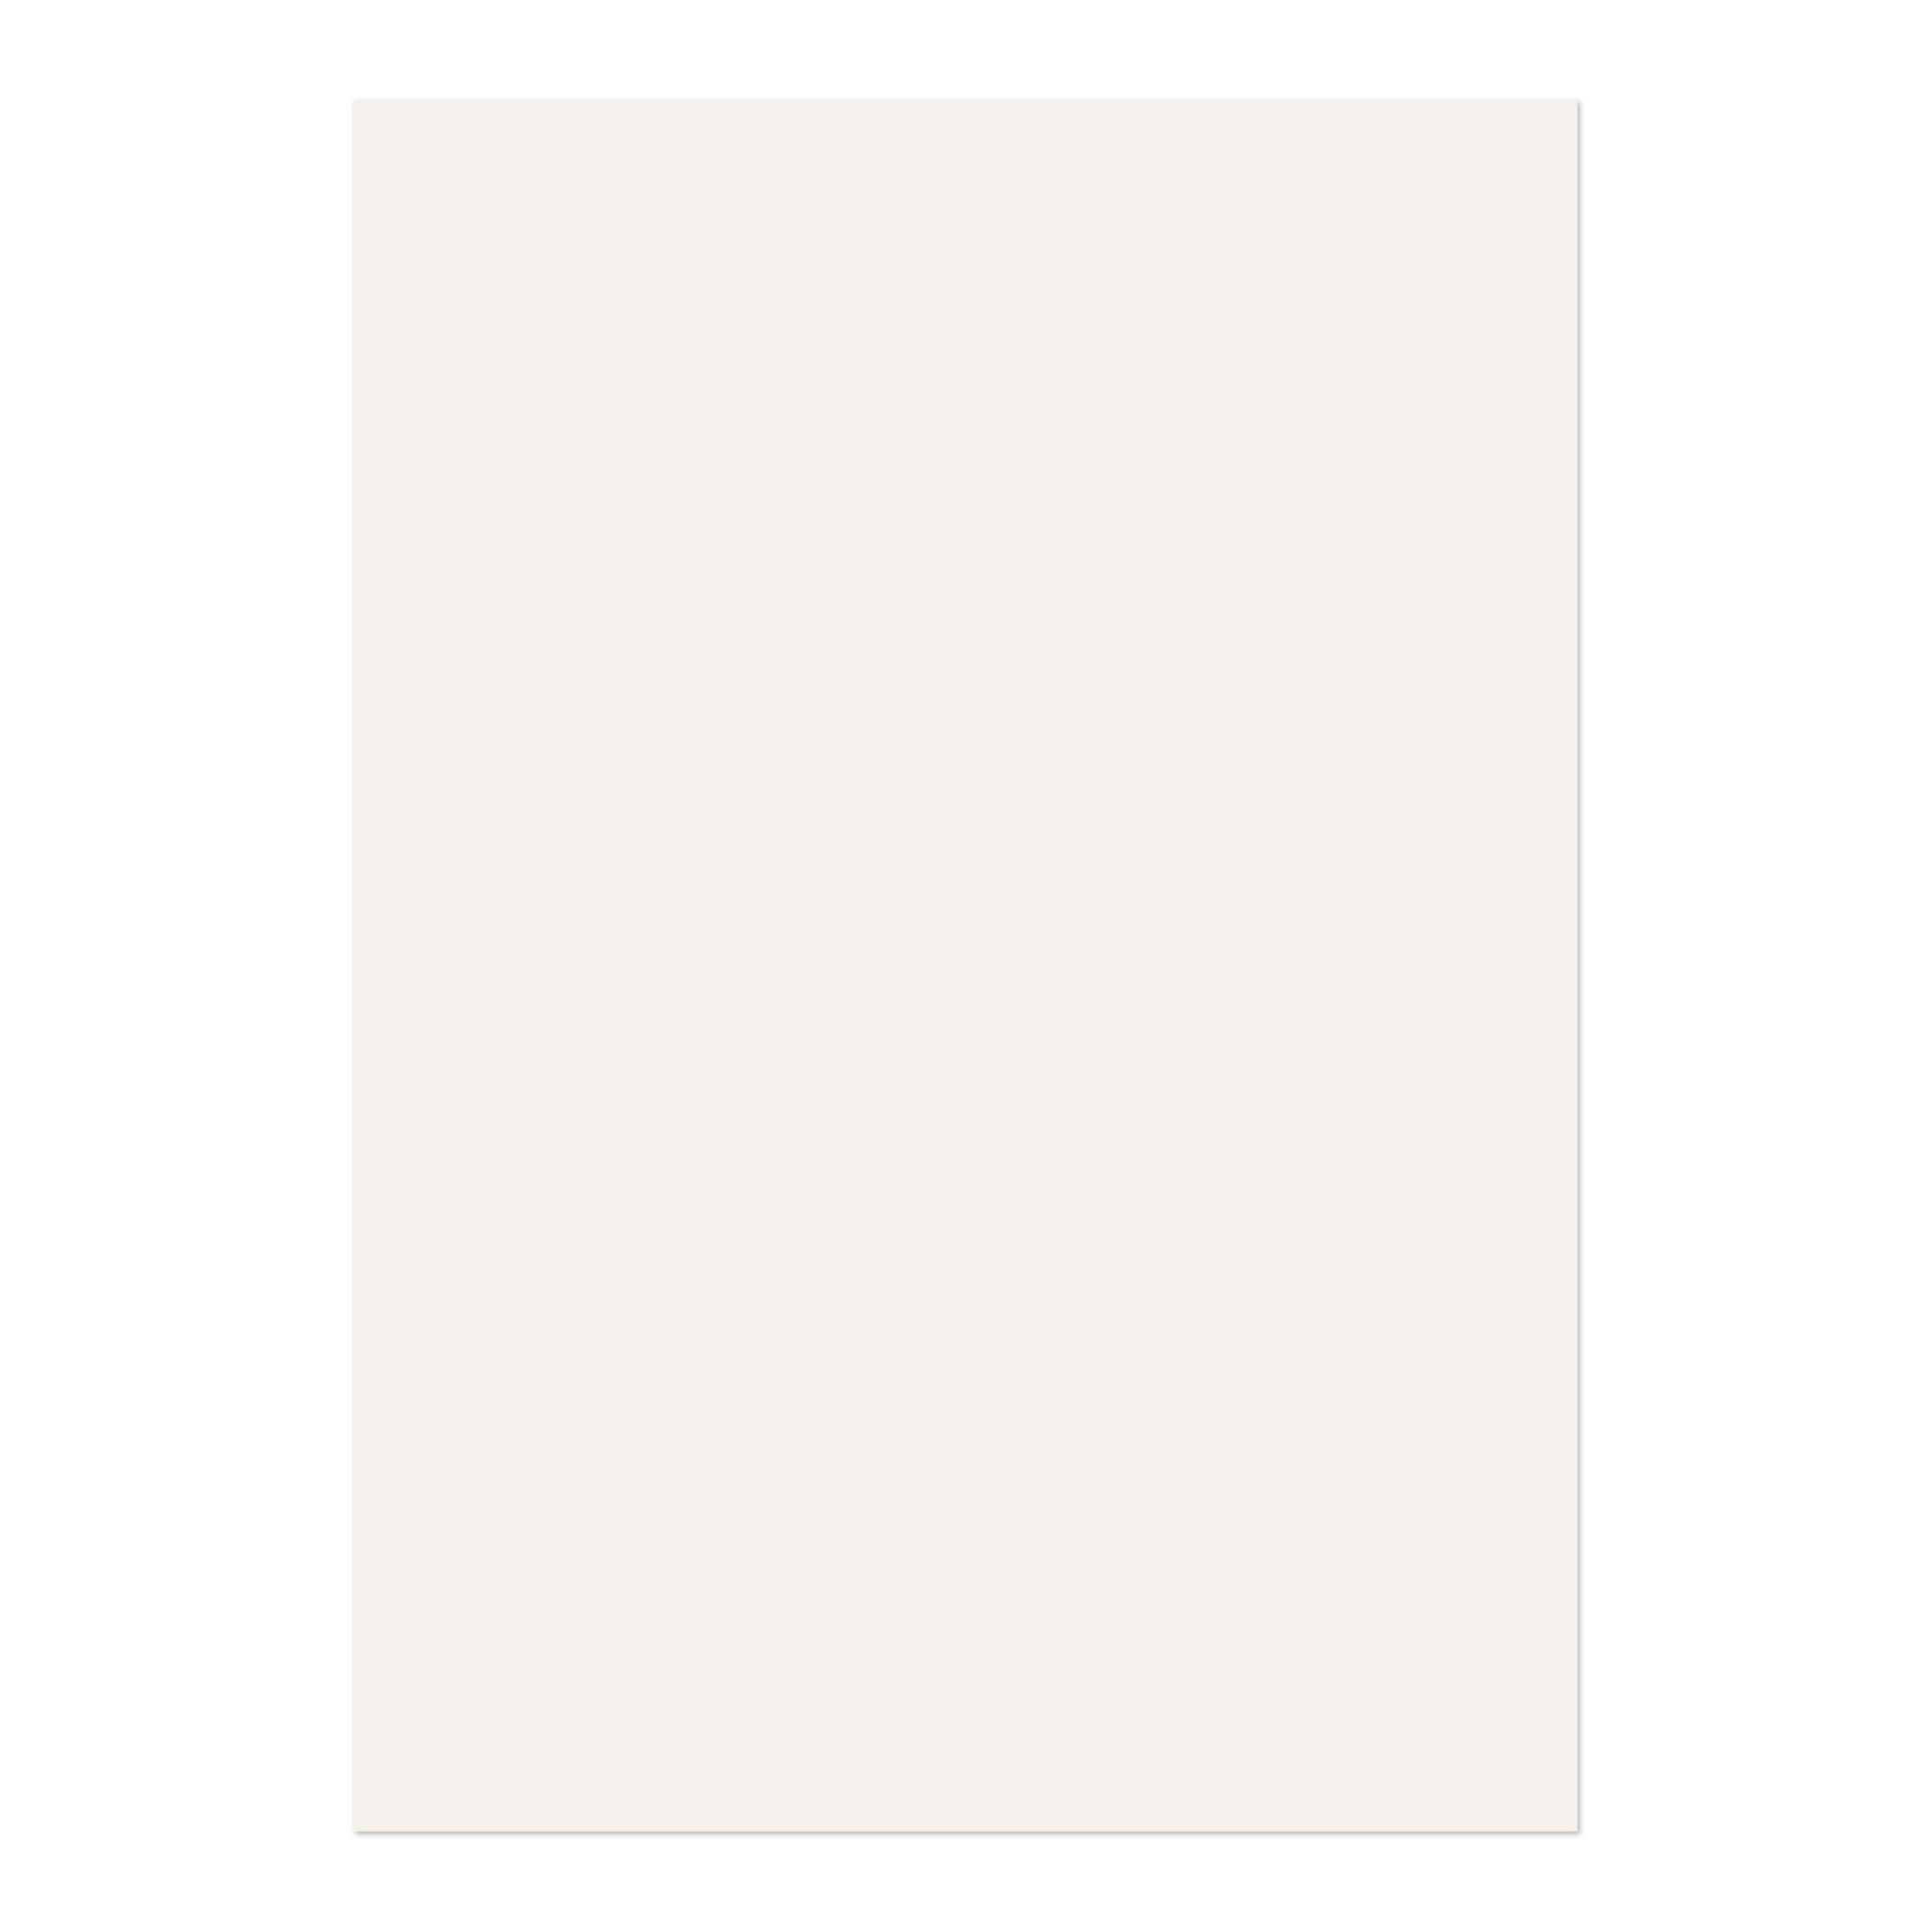 A4 Blake Premium Business Paper A4 120gsm High White Laid (Pack 50)